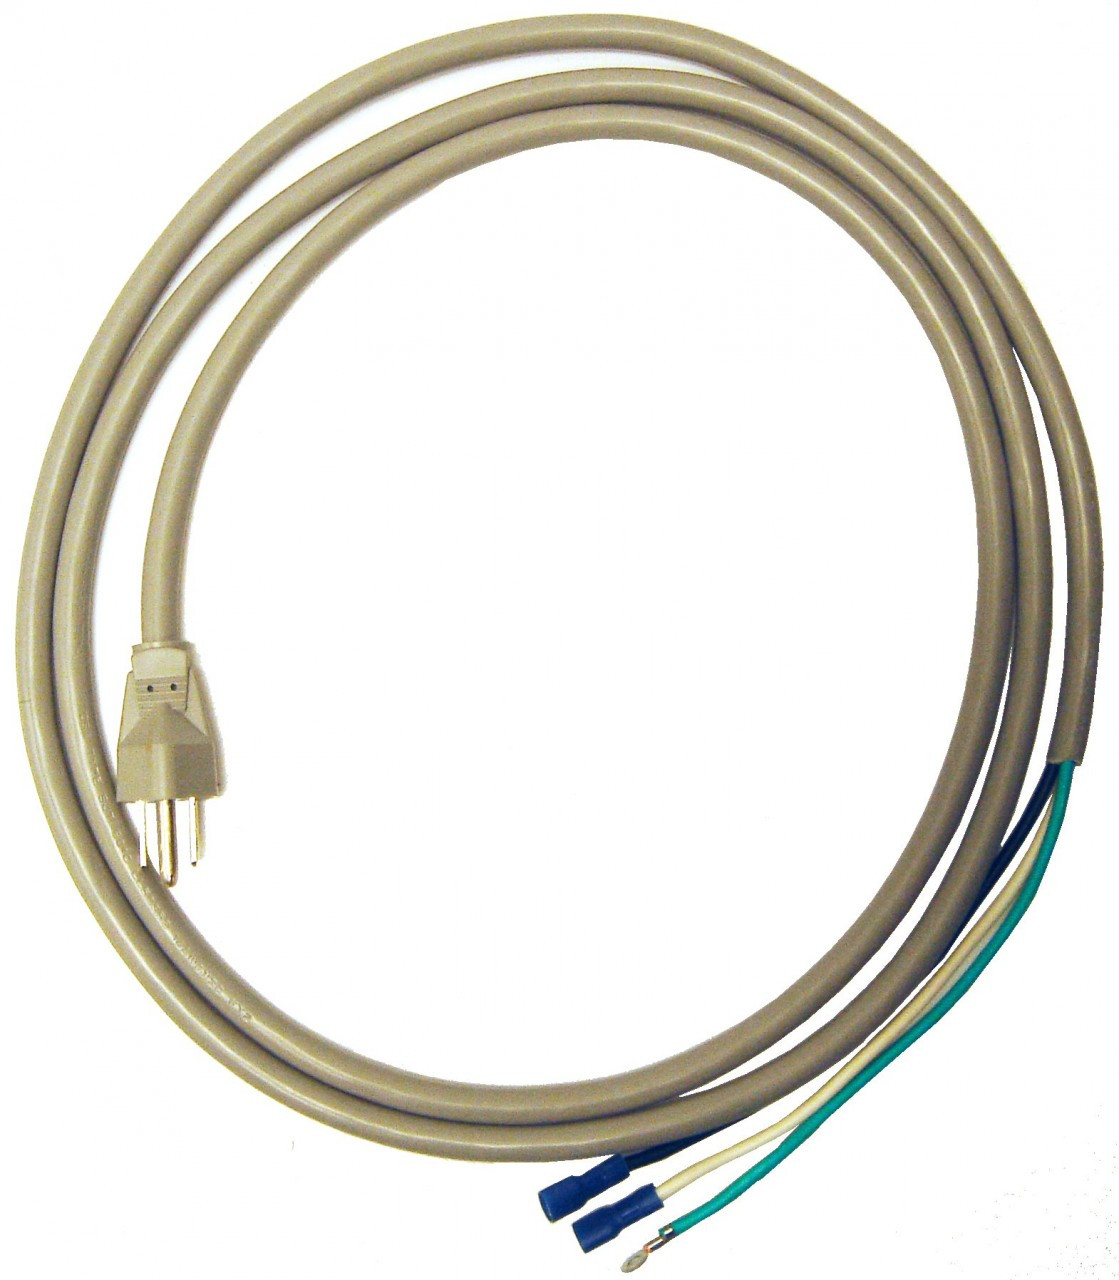 Power Cord Receptacle To Canopy 120v 15 Amp Esb Tanning Beds Store Bed Wiring Image 1